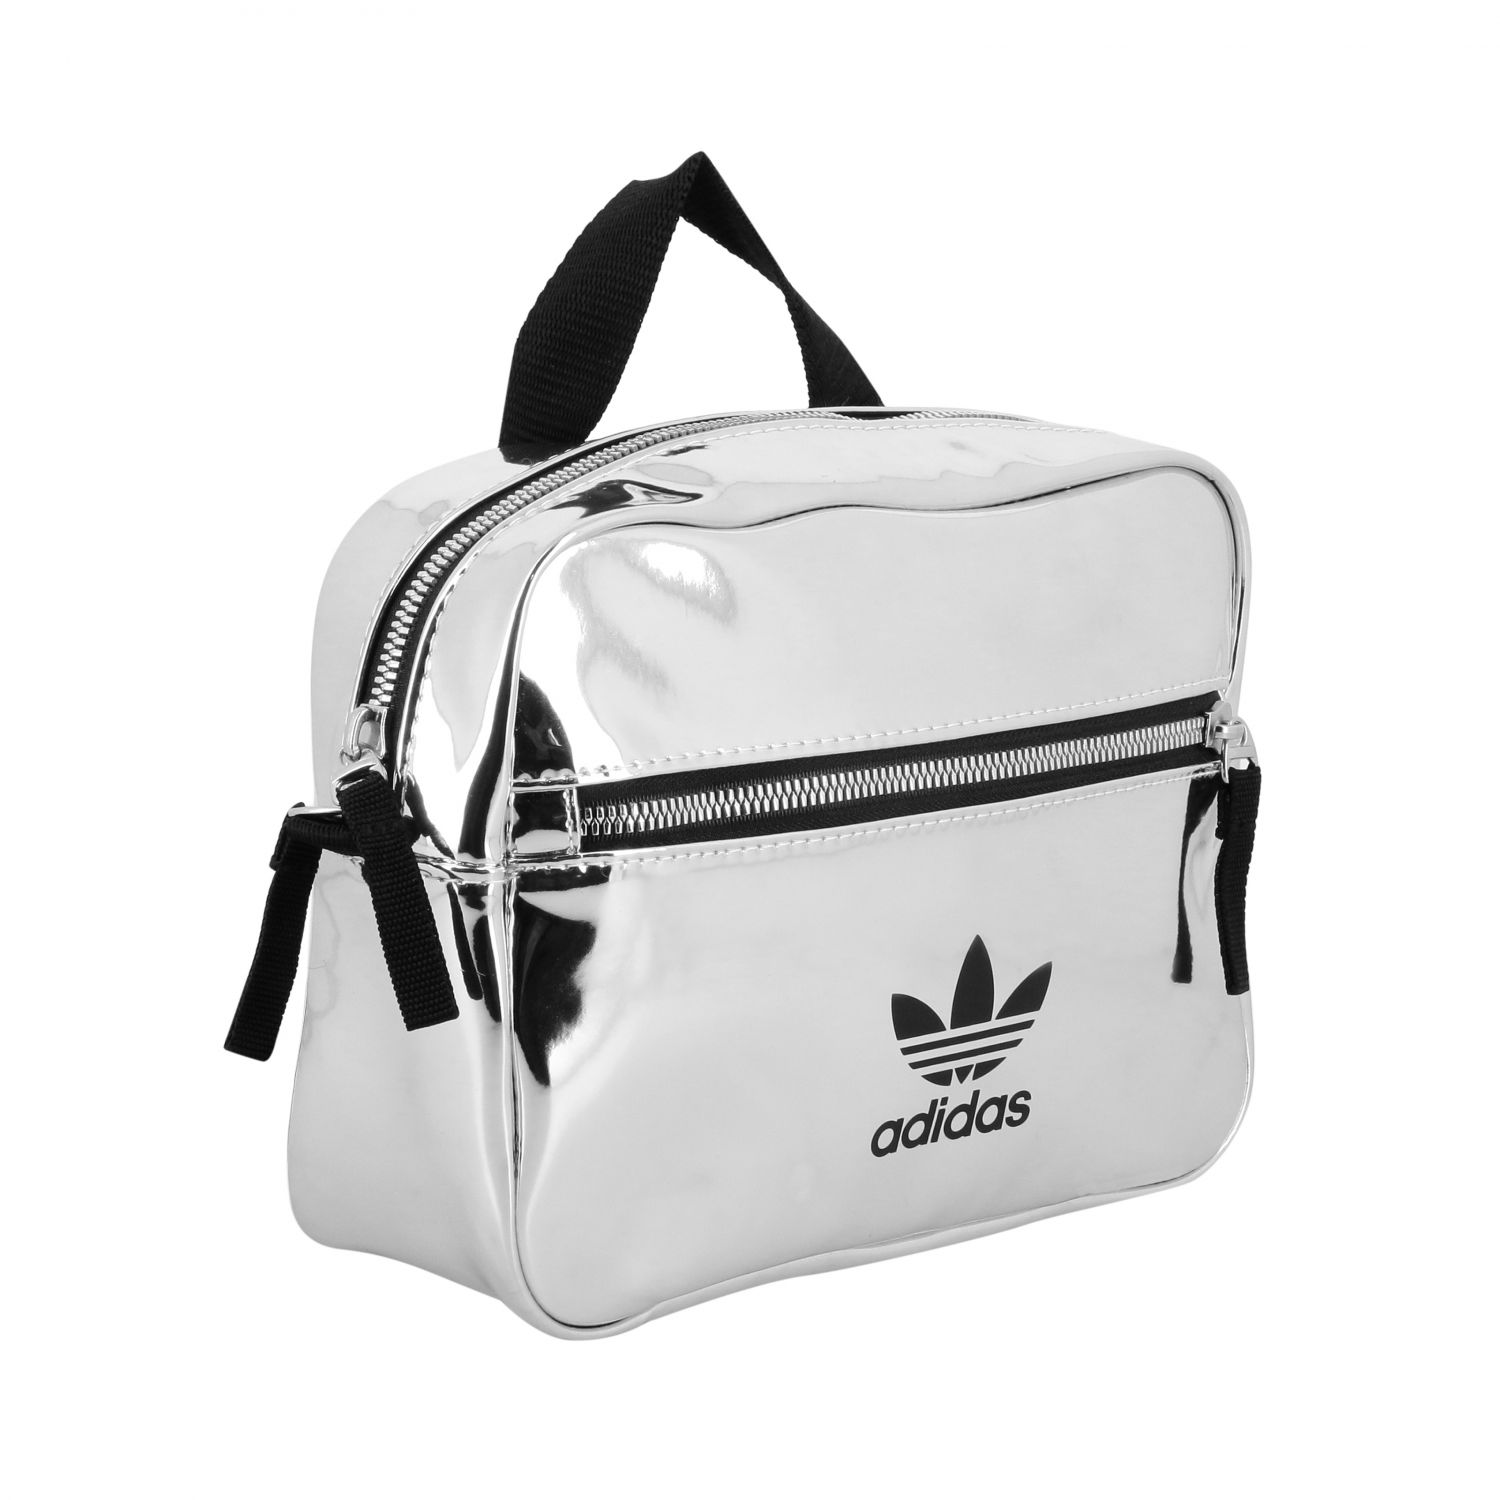 Clutch Adidas Originals: Clutch kids Adidas Originals silver 3